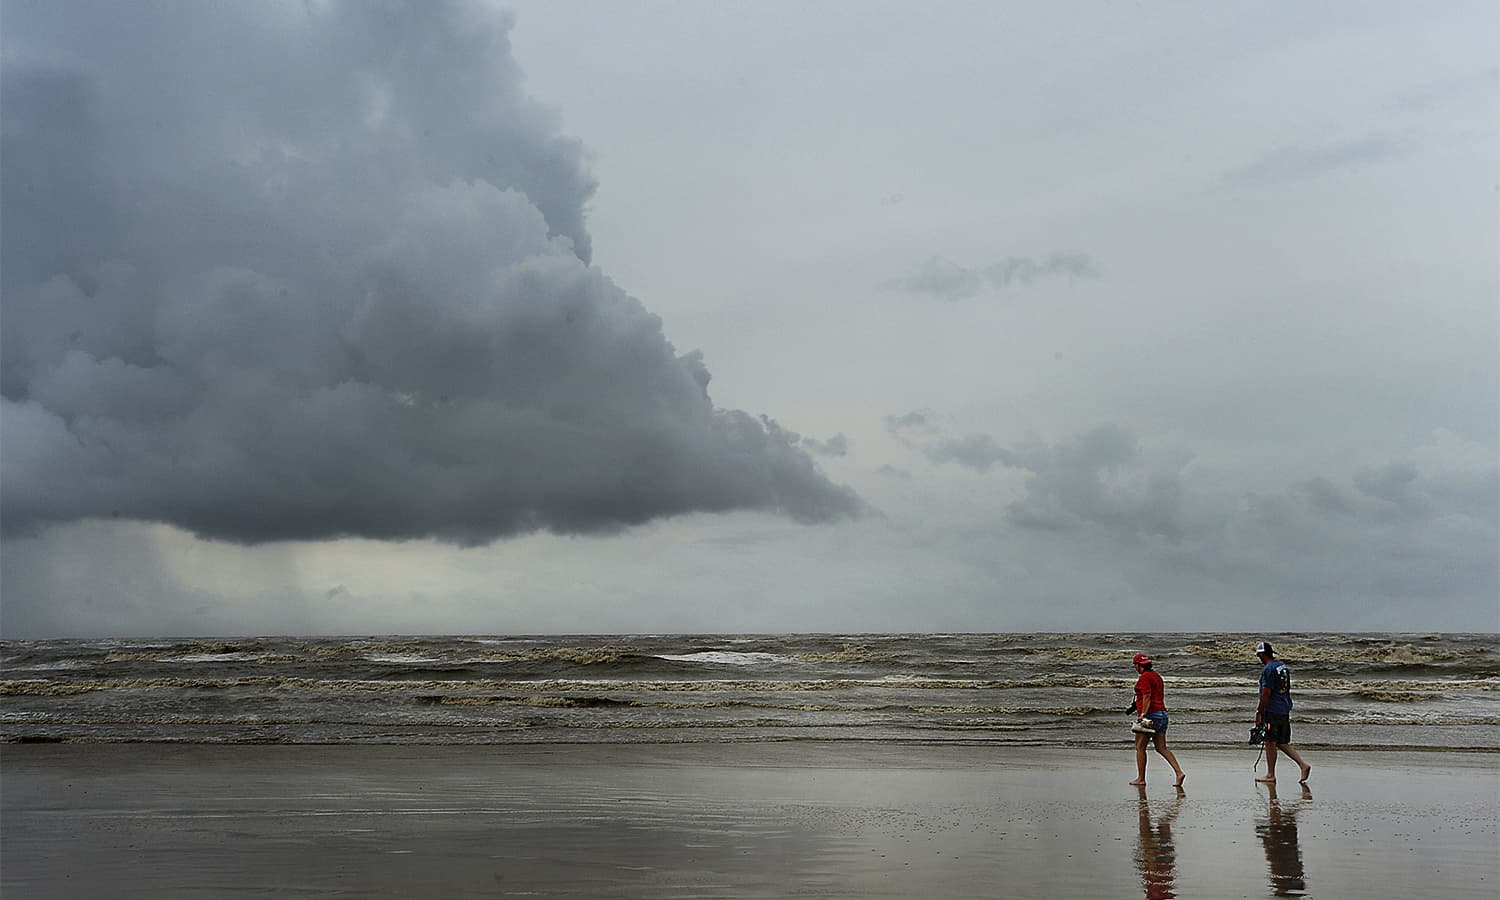 A couple strolls along the shore in McFaddin Beach, Texas as storm clouds build on the horizon the day after Hurricane Harvey made land, battering the gulf communities near Corpus Christi. — AP